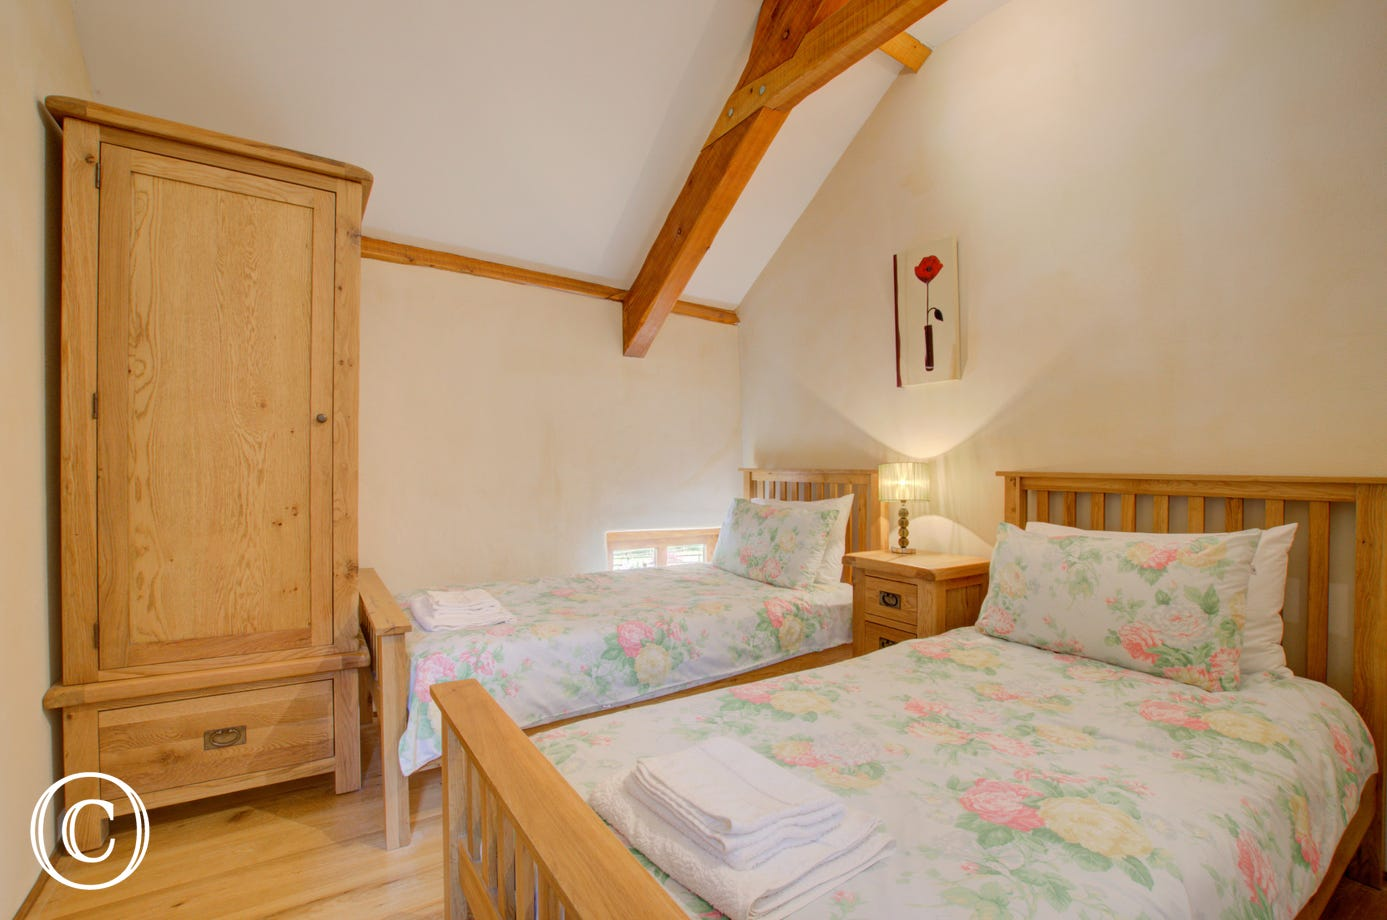 The cosy twin bedded room